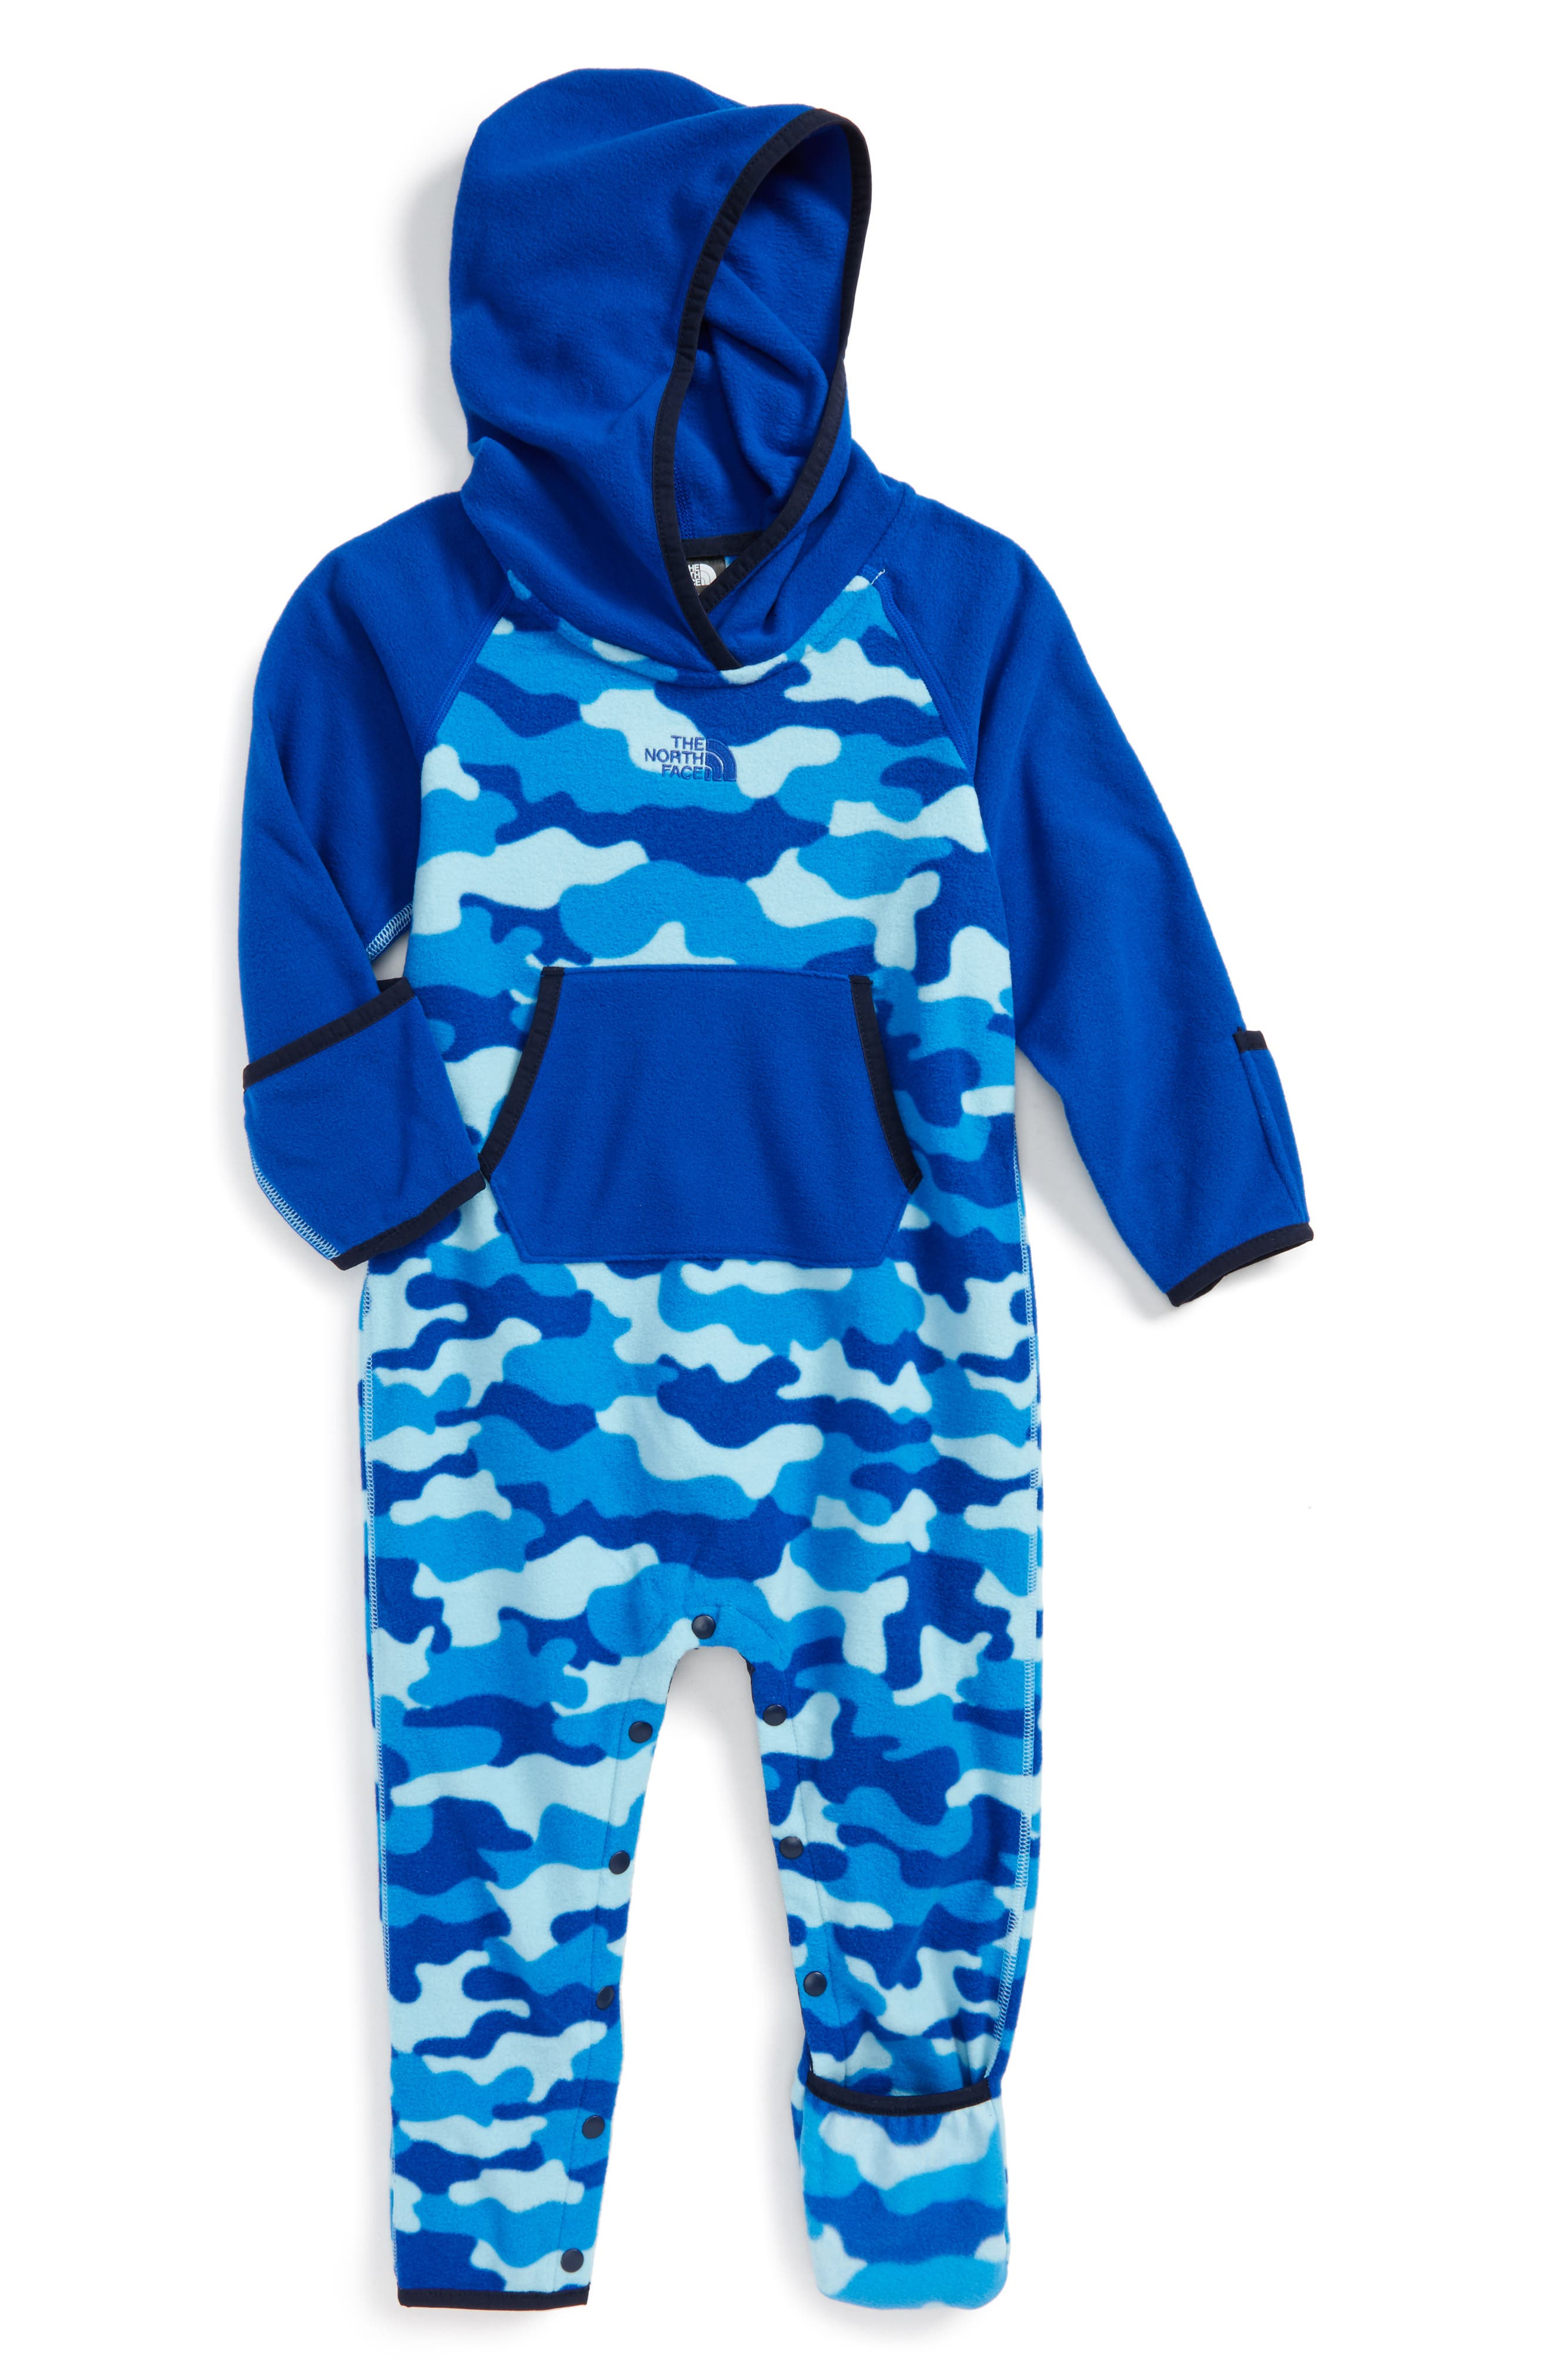 The North Face 'Glacier' One-Piece (Baby Boys) (Regular Retail Price: $50.00)